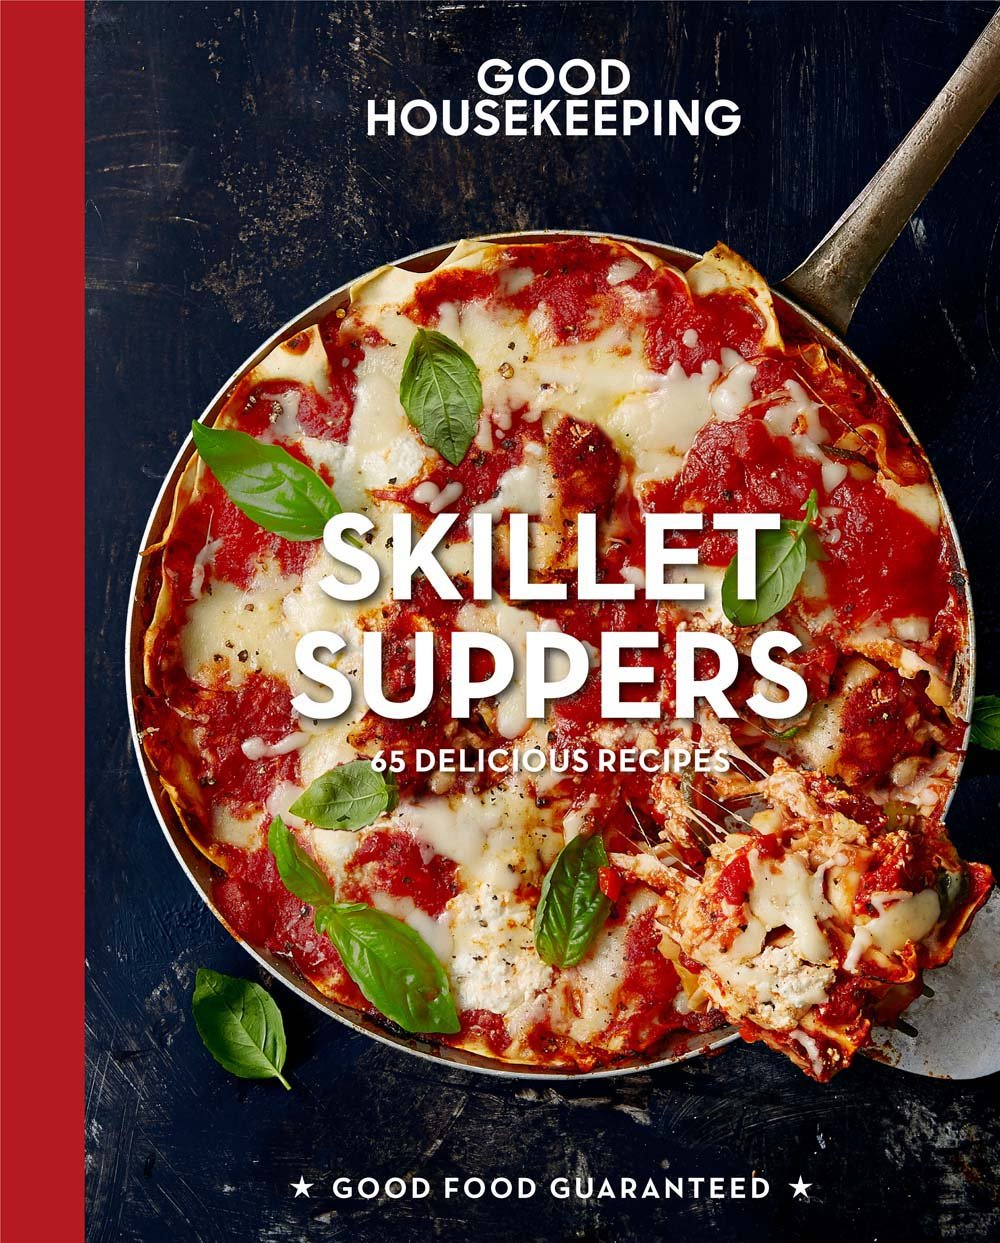 Good Housekeeping Skillet Suppers: 65 Delicious Recipes (Good Food Guaranteed) Hardcover – April 4, 2017 Susan Westmoreland Hearst 161837236X Methods - Special Appliances